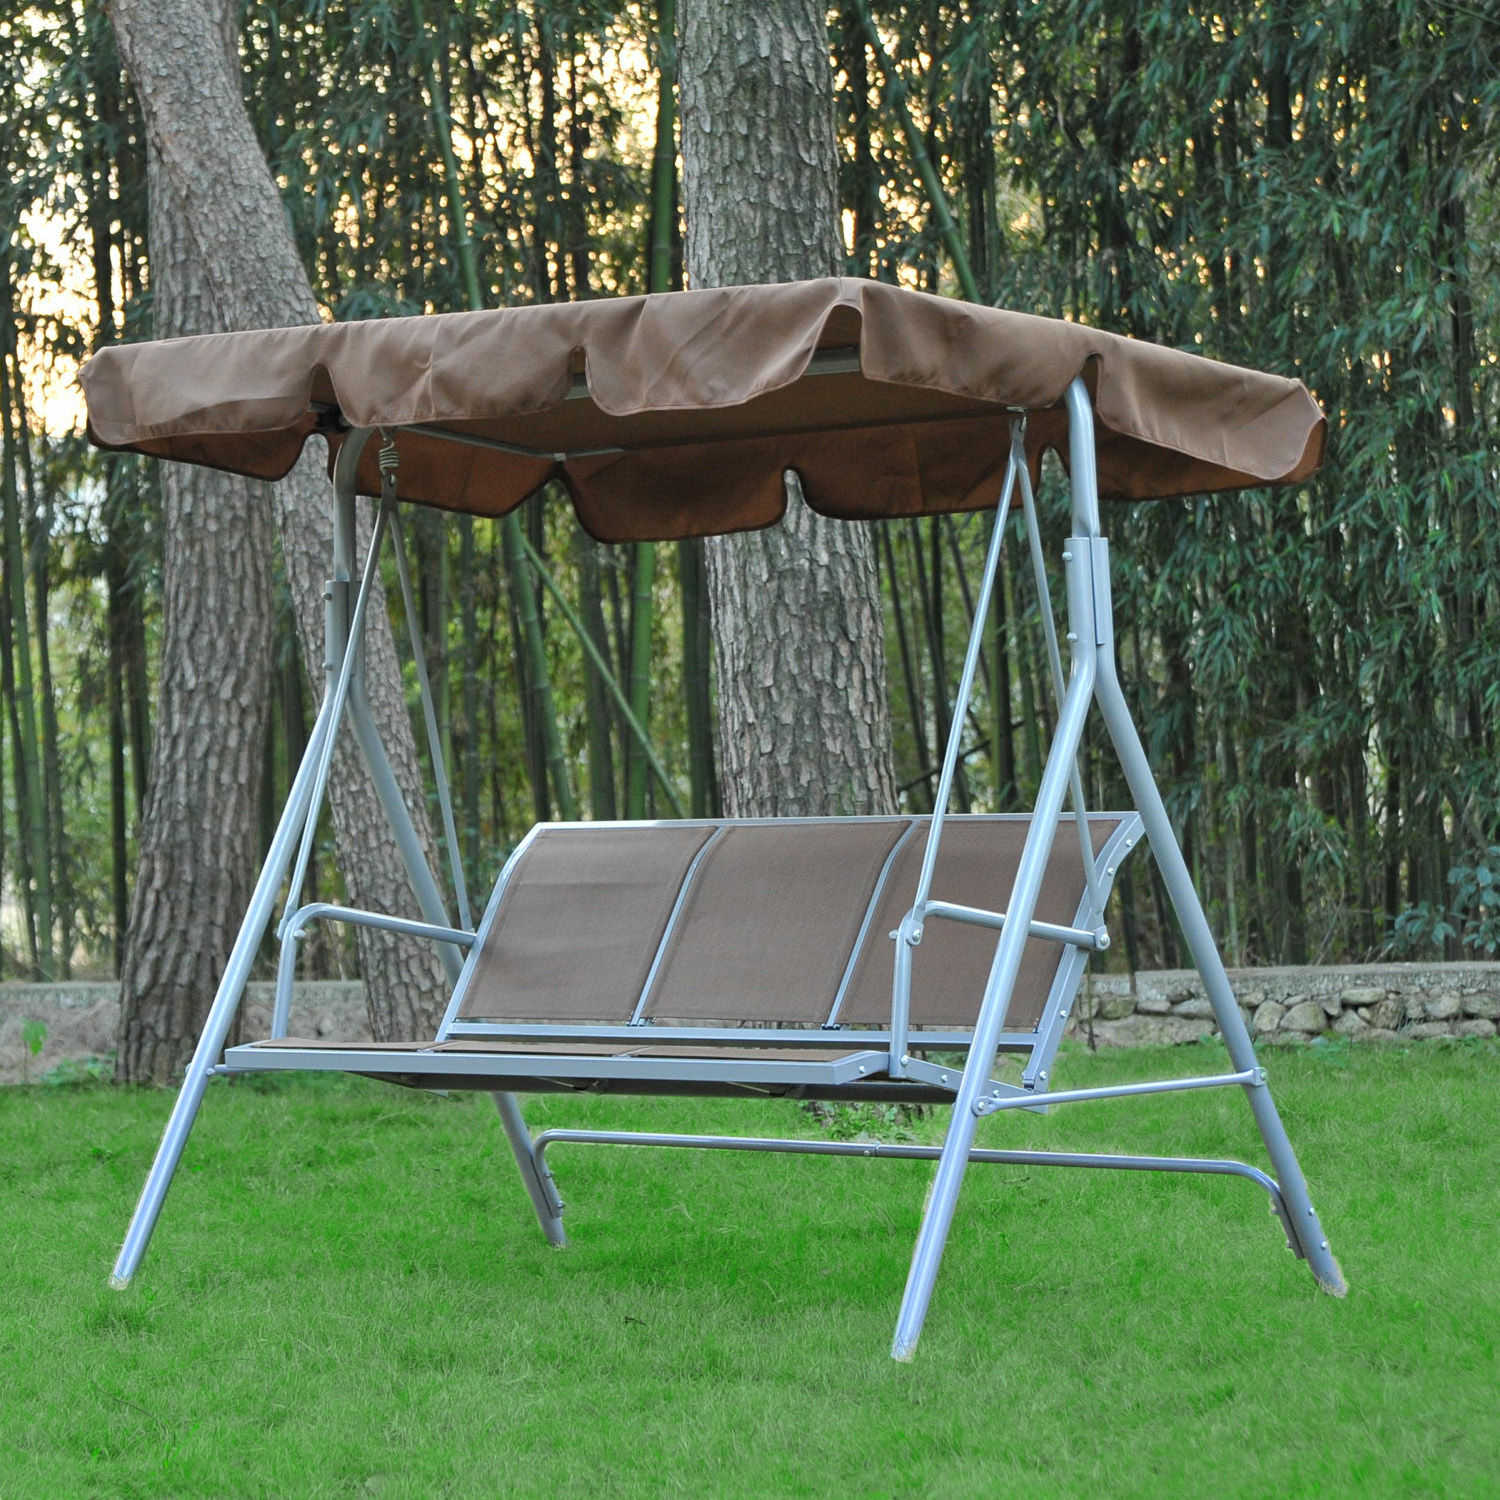 Outsunny 170l X 110w X 153h Cm 3 Seater Swing Chair Brown Mh Star